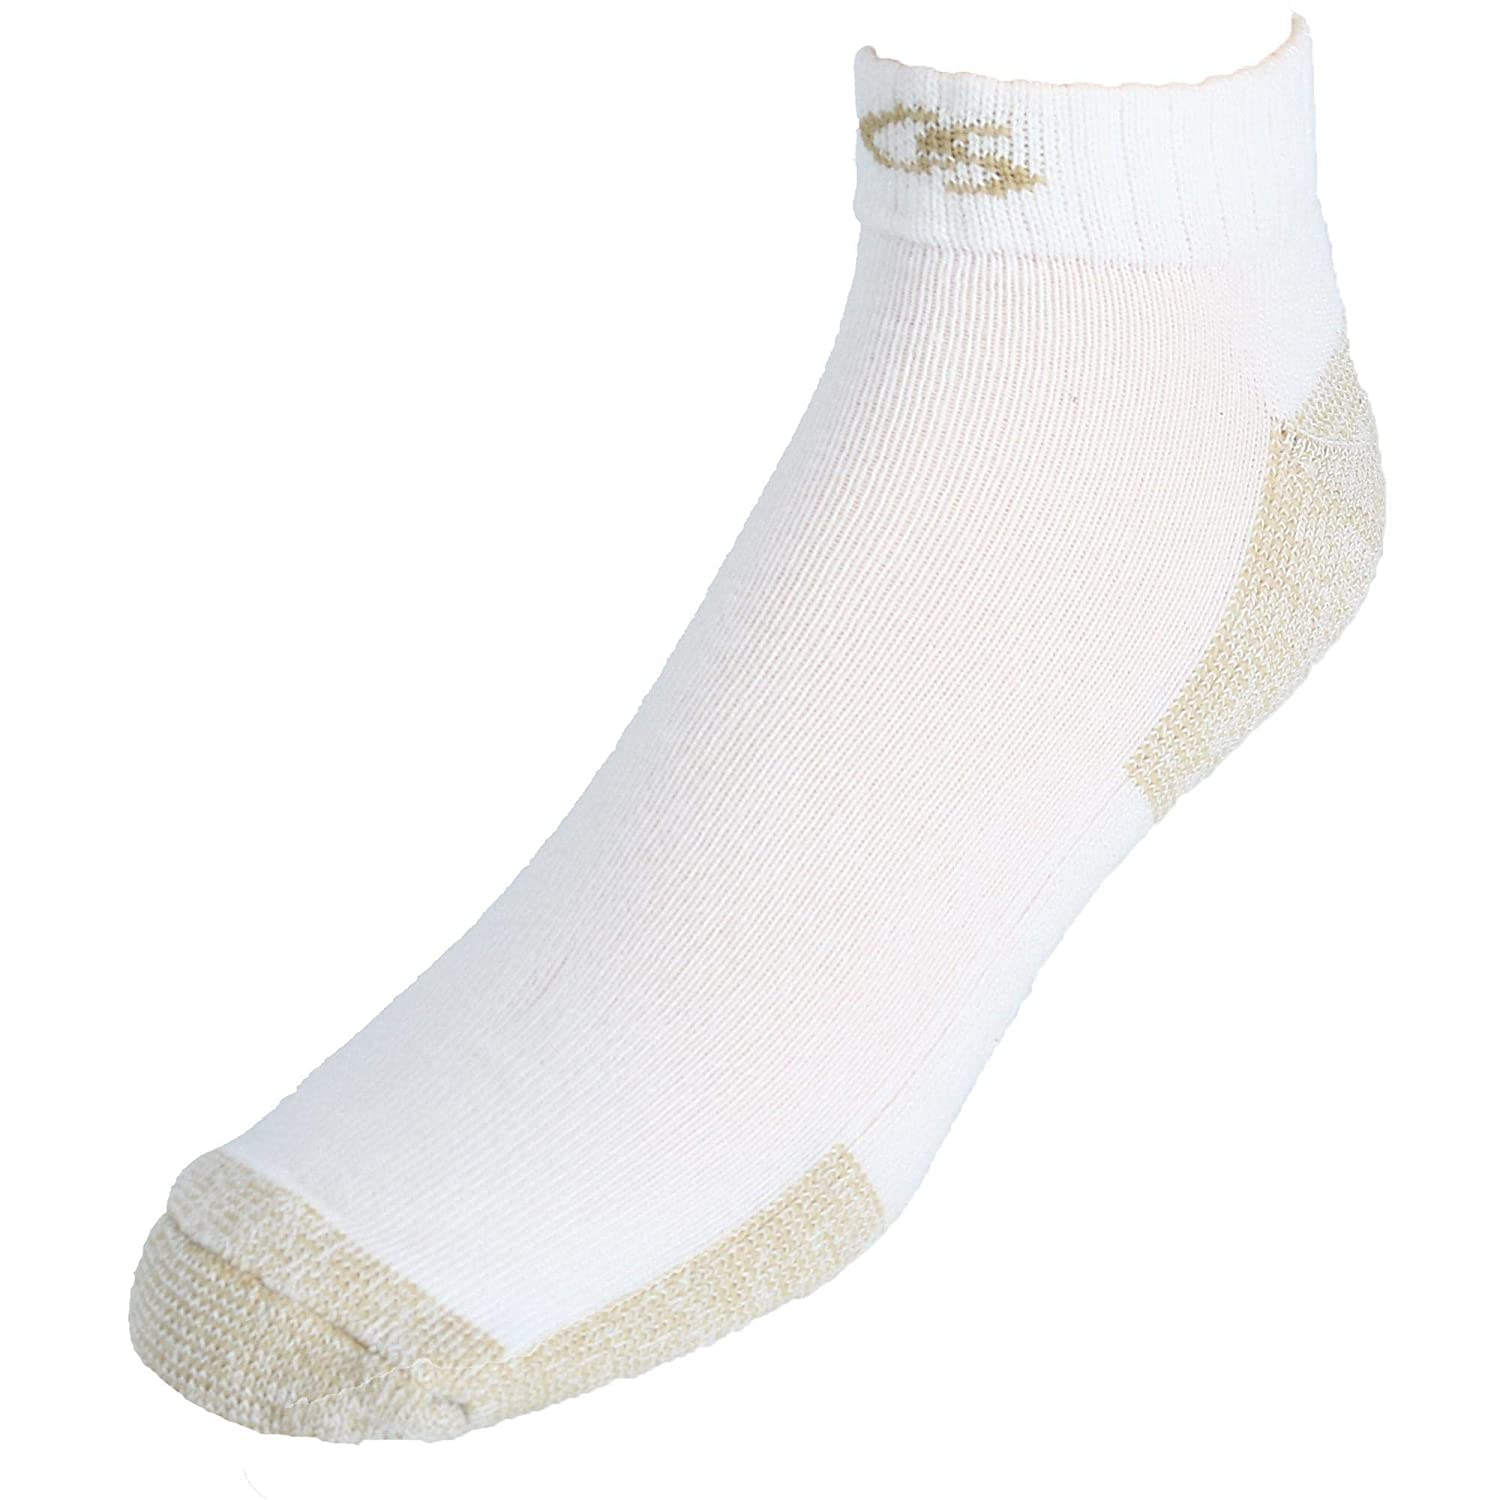 Copper Sole Men's Extended Size Odor Control Low Cut Socks (3 Pair Pack) CS840-WX